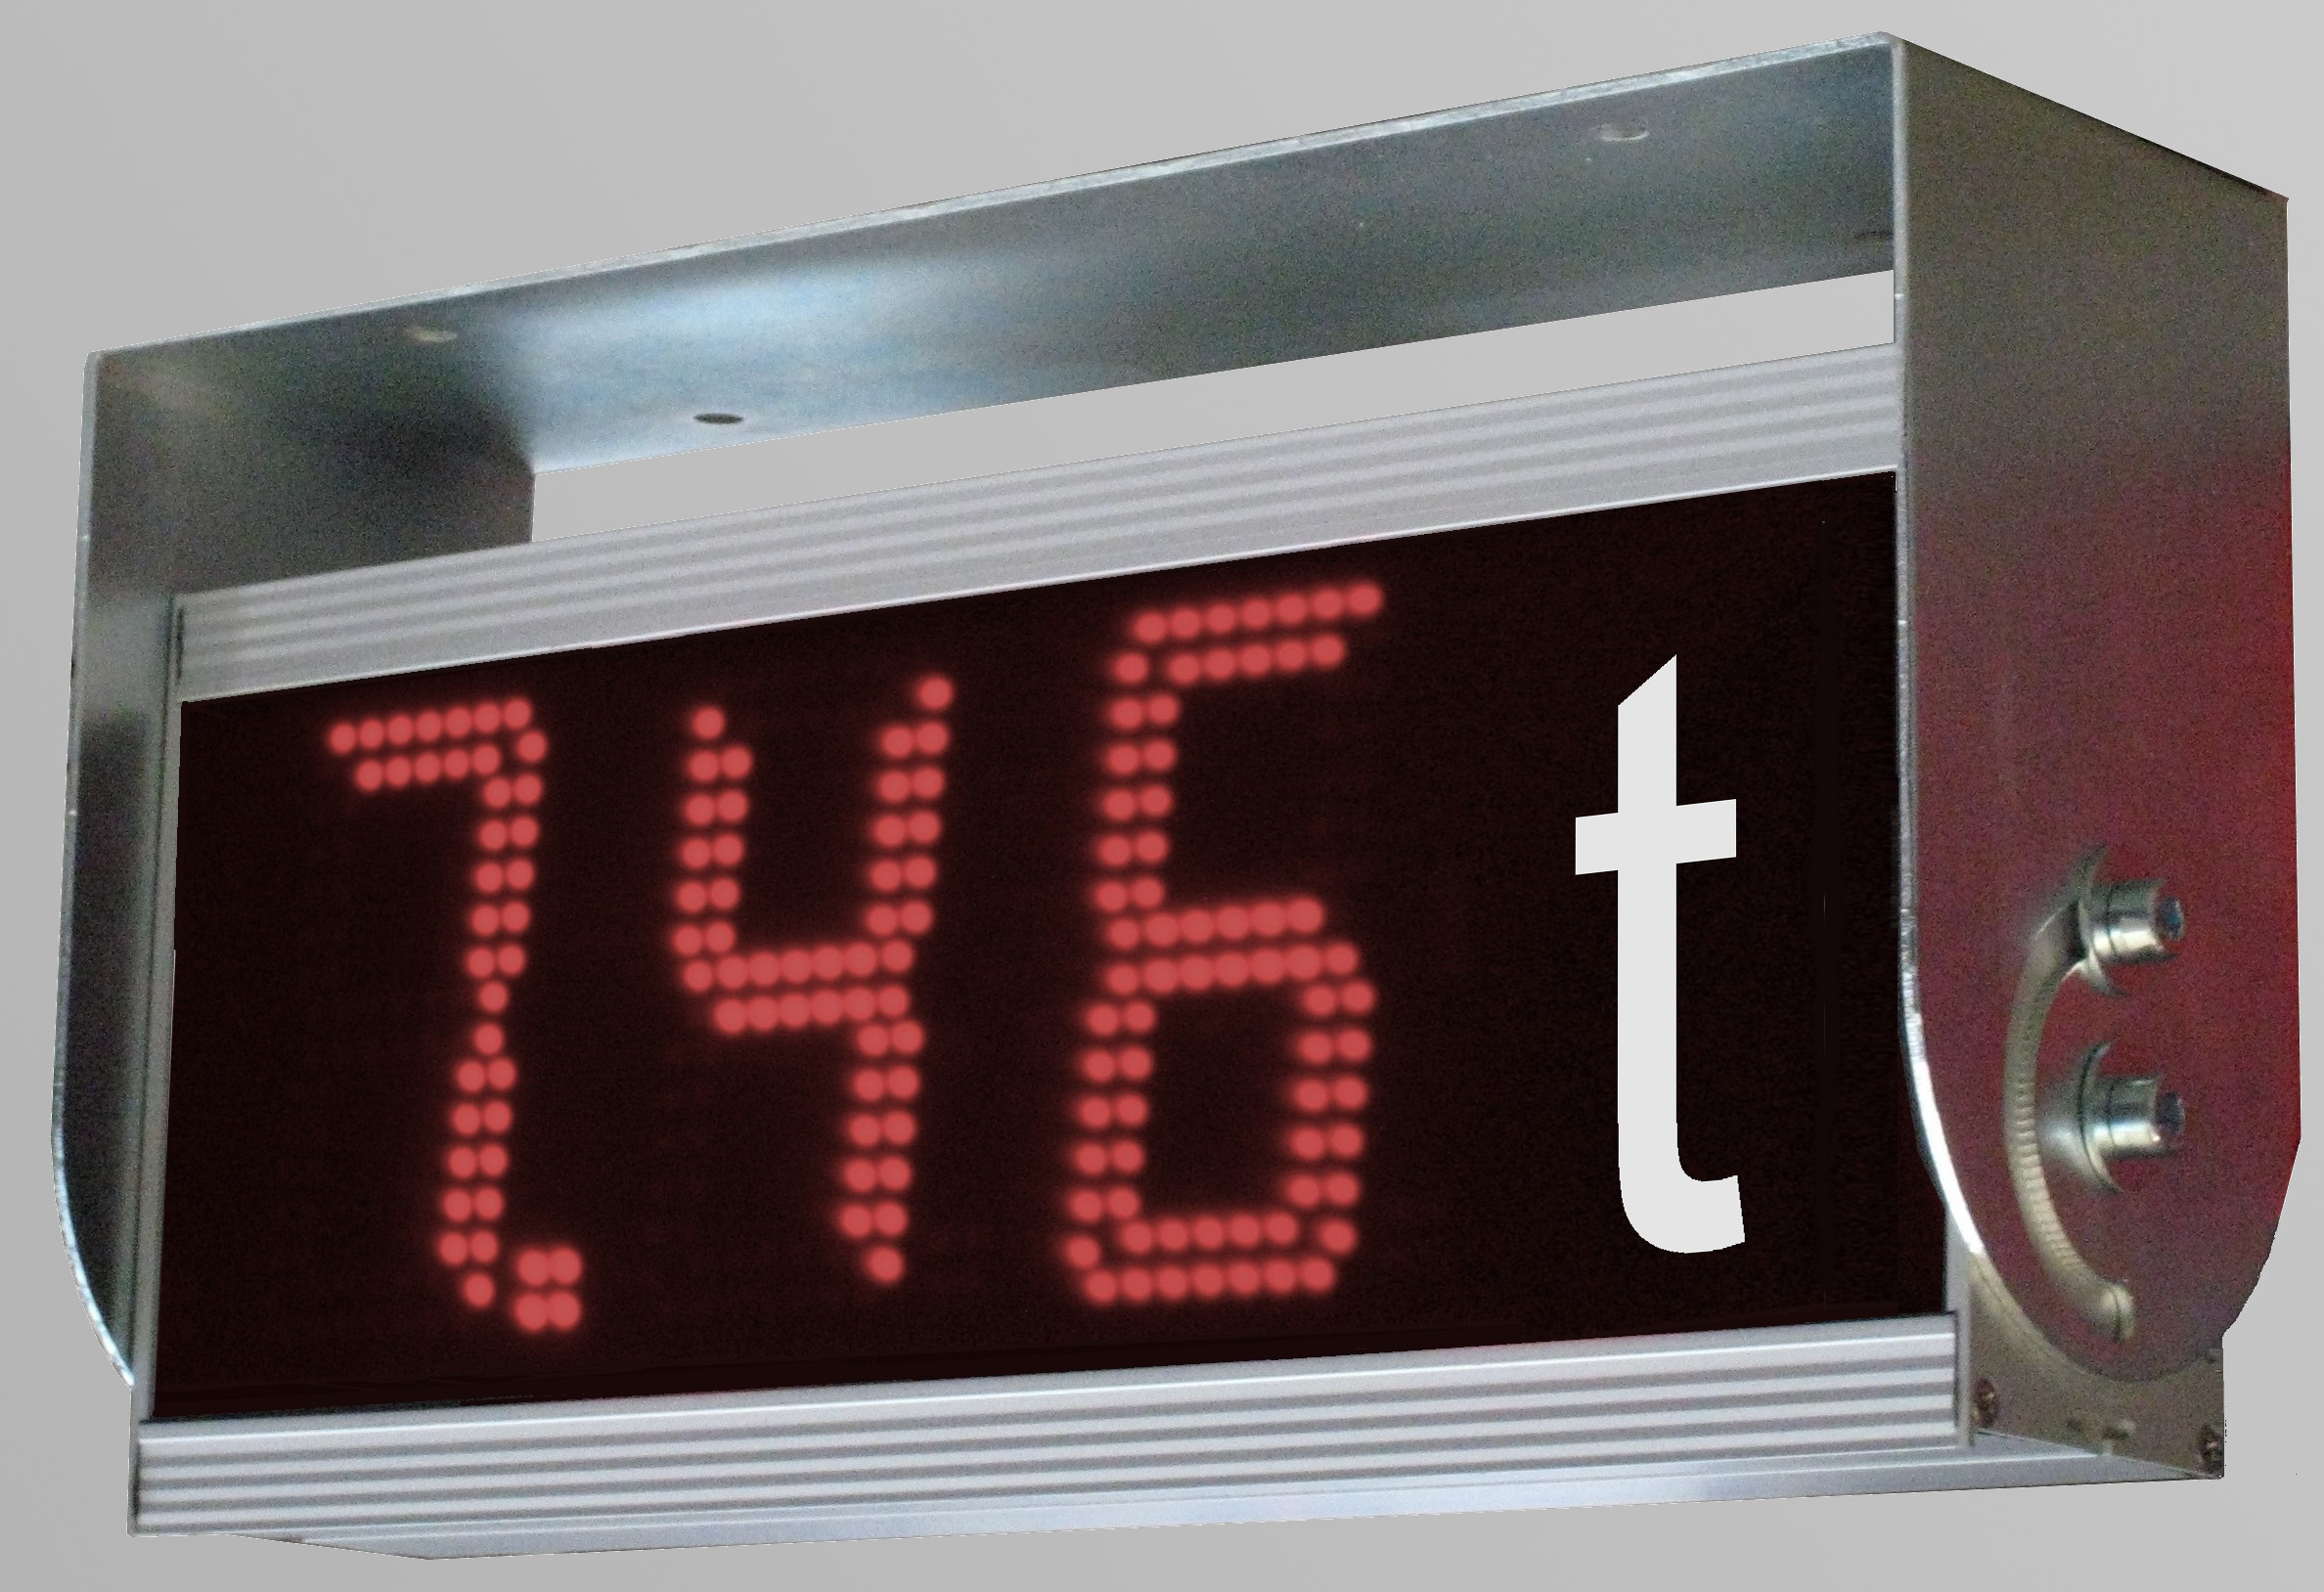 Numeric LED large display incl. mounting brackets, weight measurement, character height 100 mm,  outdoor, dimensions 170x375x80 mm